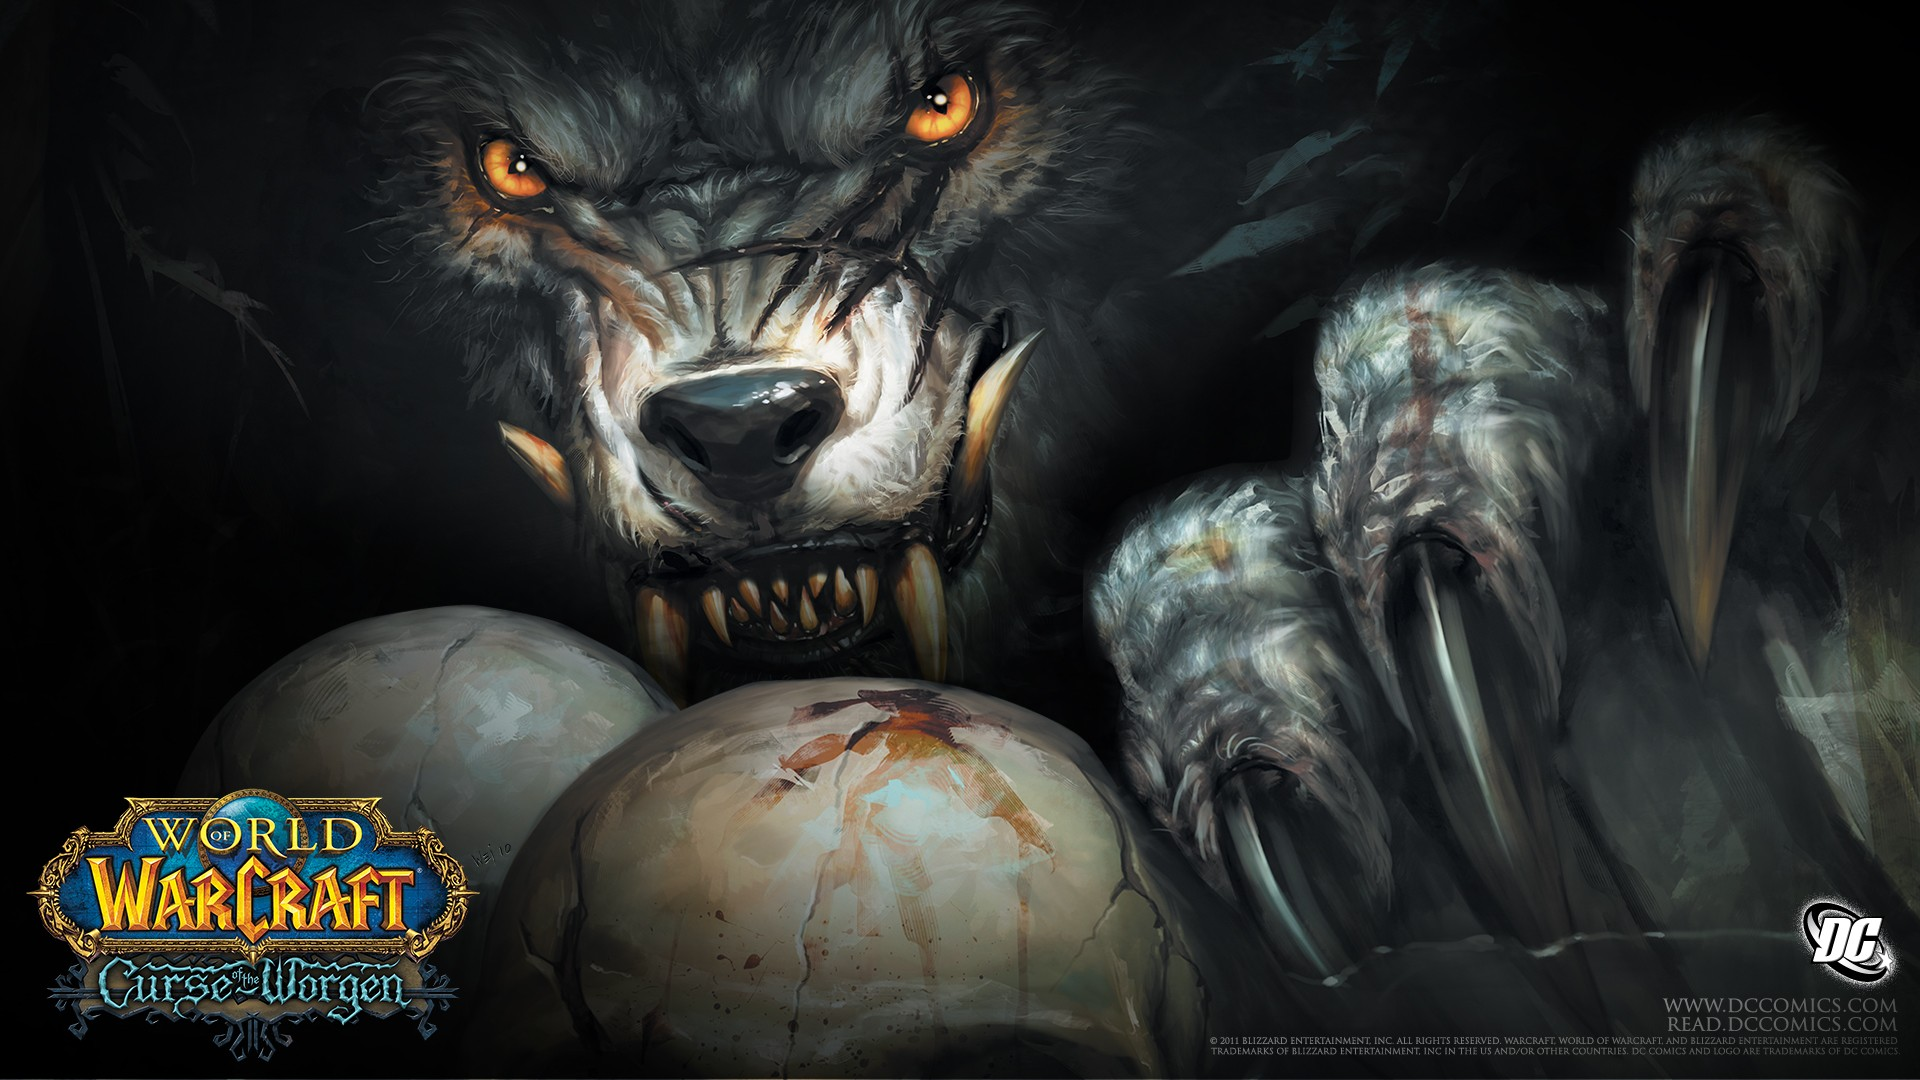 world de warcraft: the curse de worgen fonds d'écran, arrières plan